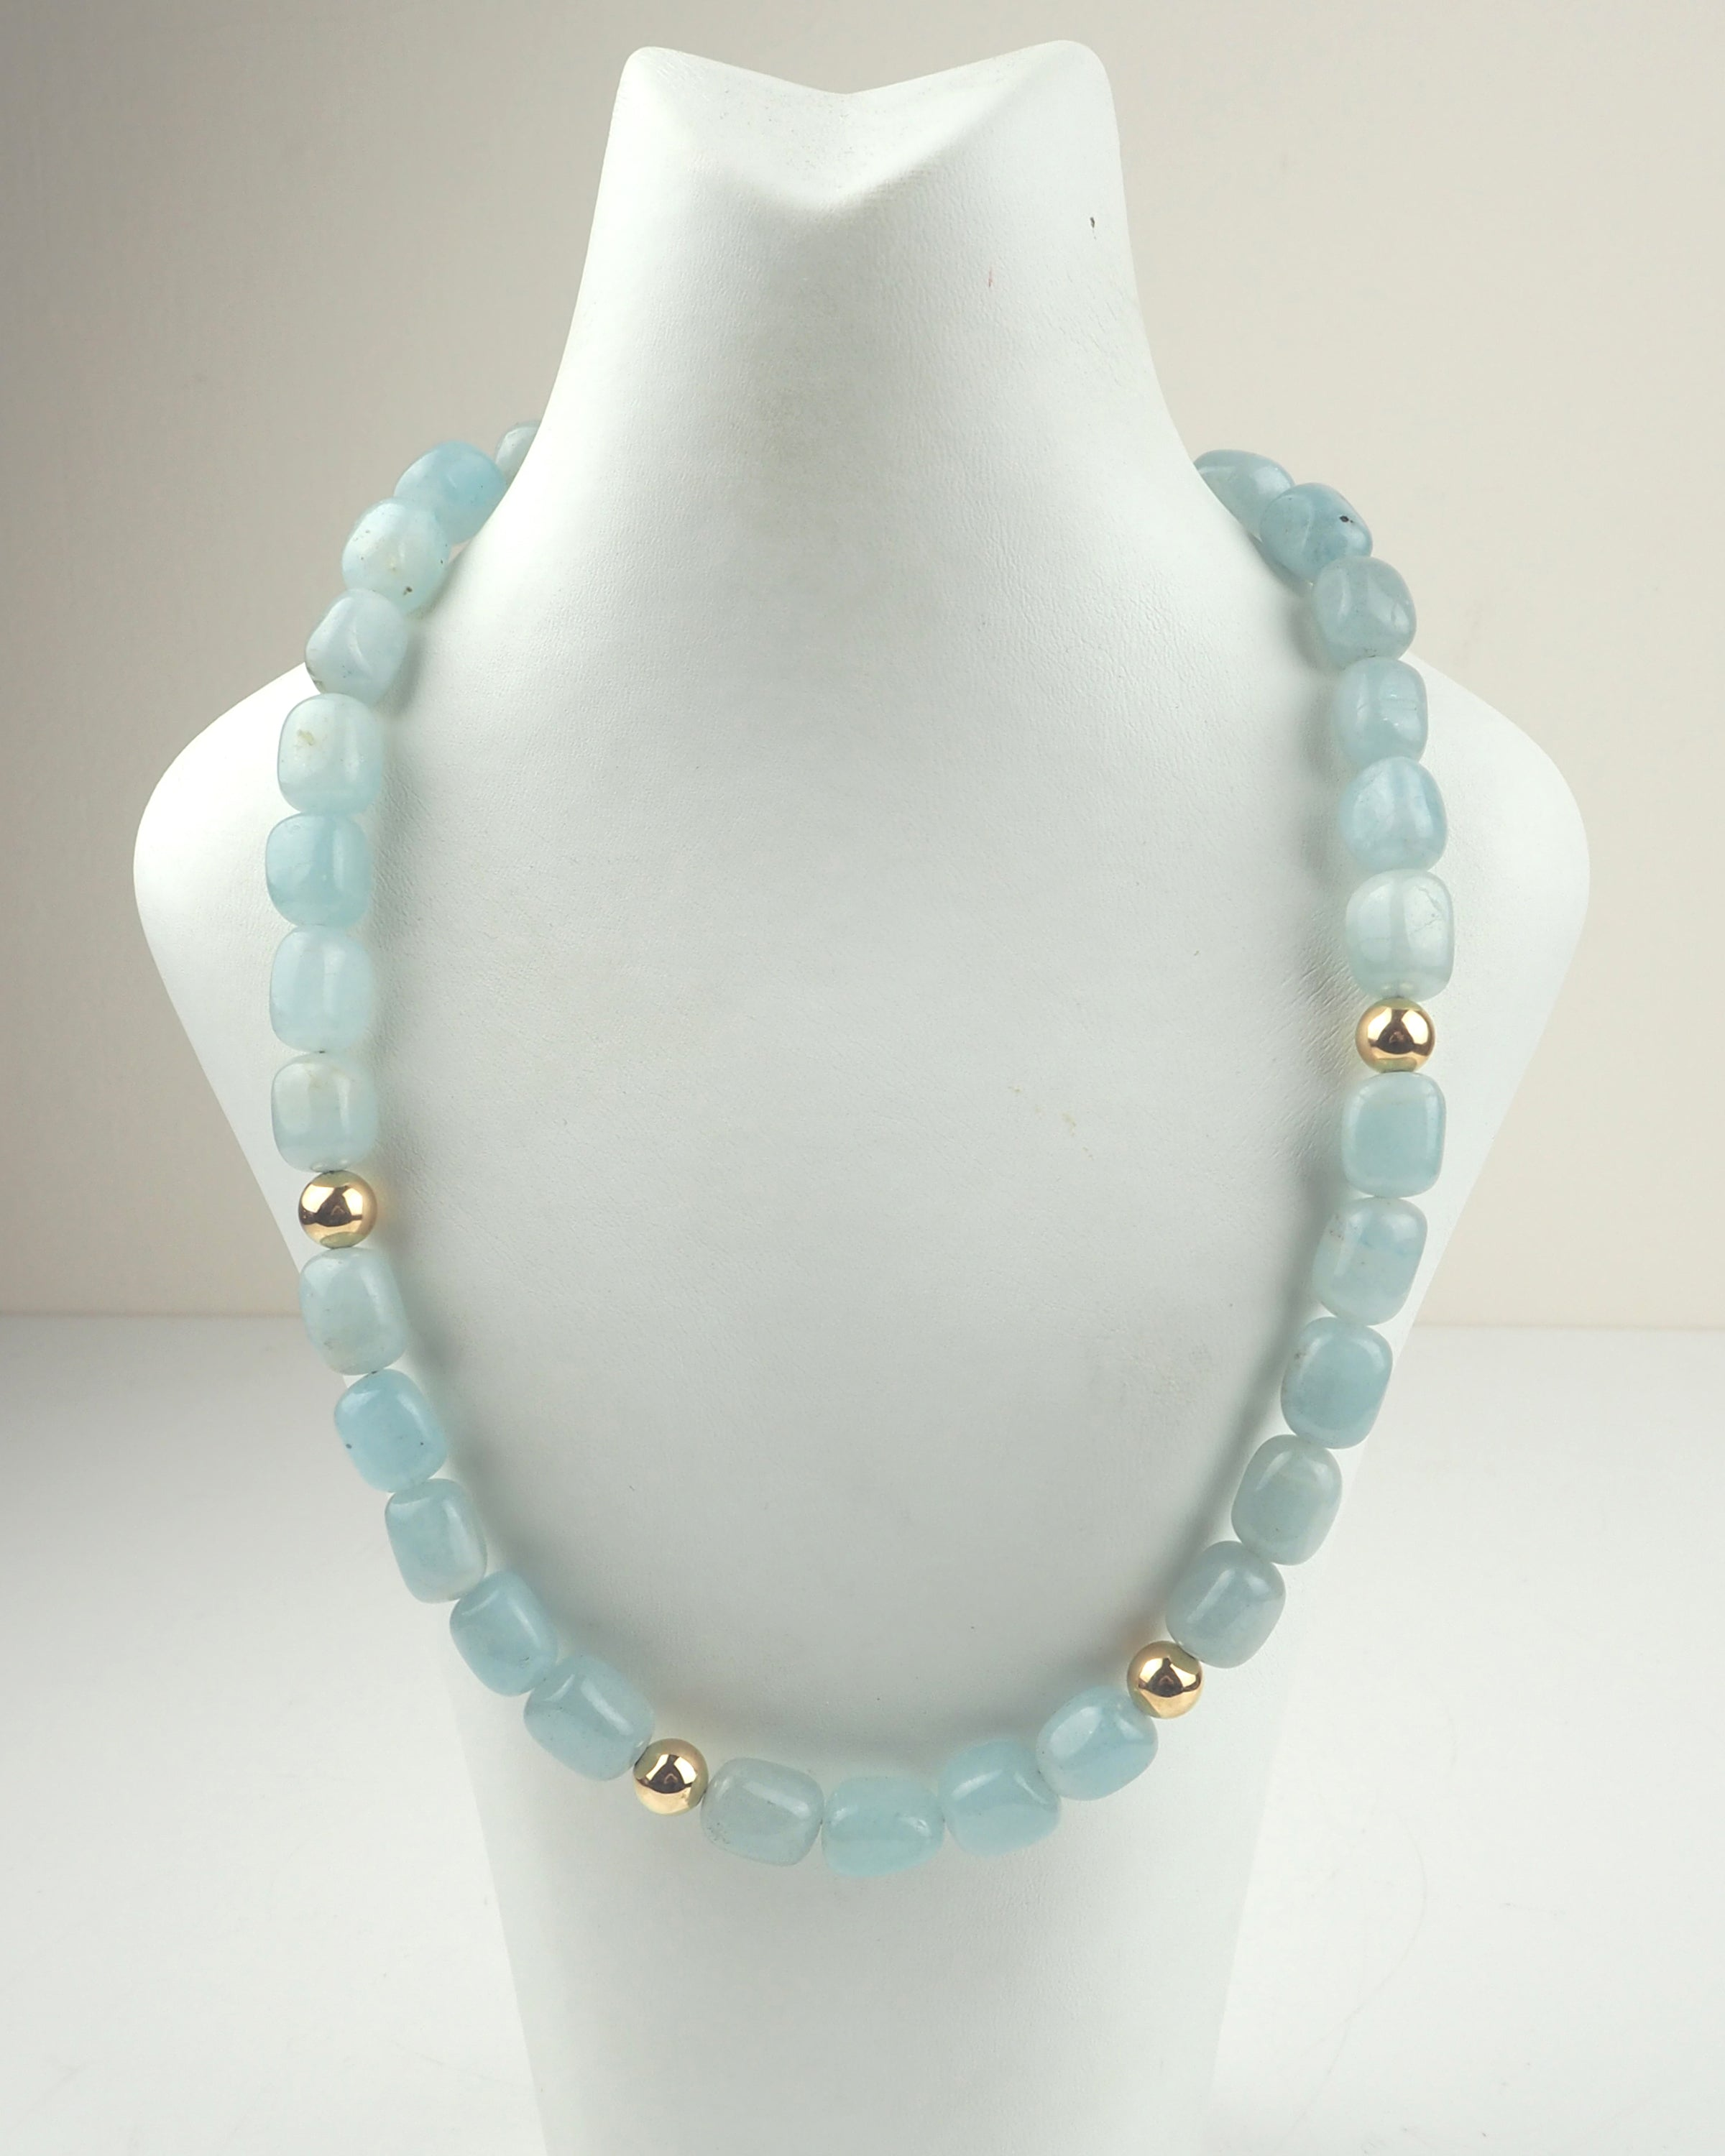 Lucas, Jackie – Polished Aquamarine and Gold Necklace | Jackie Lucas | Primavera Gallery